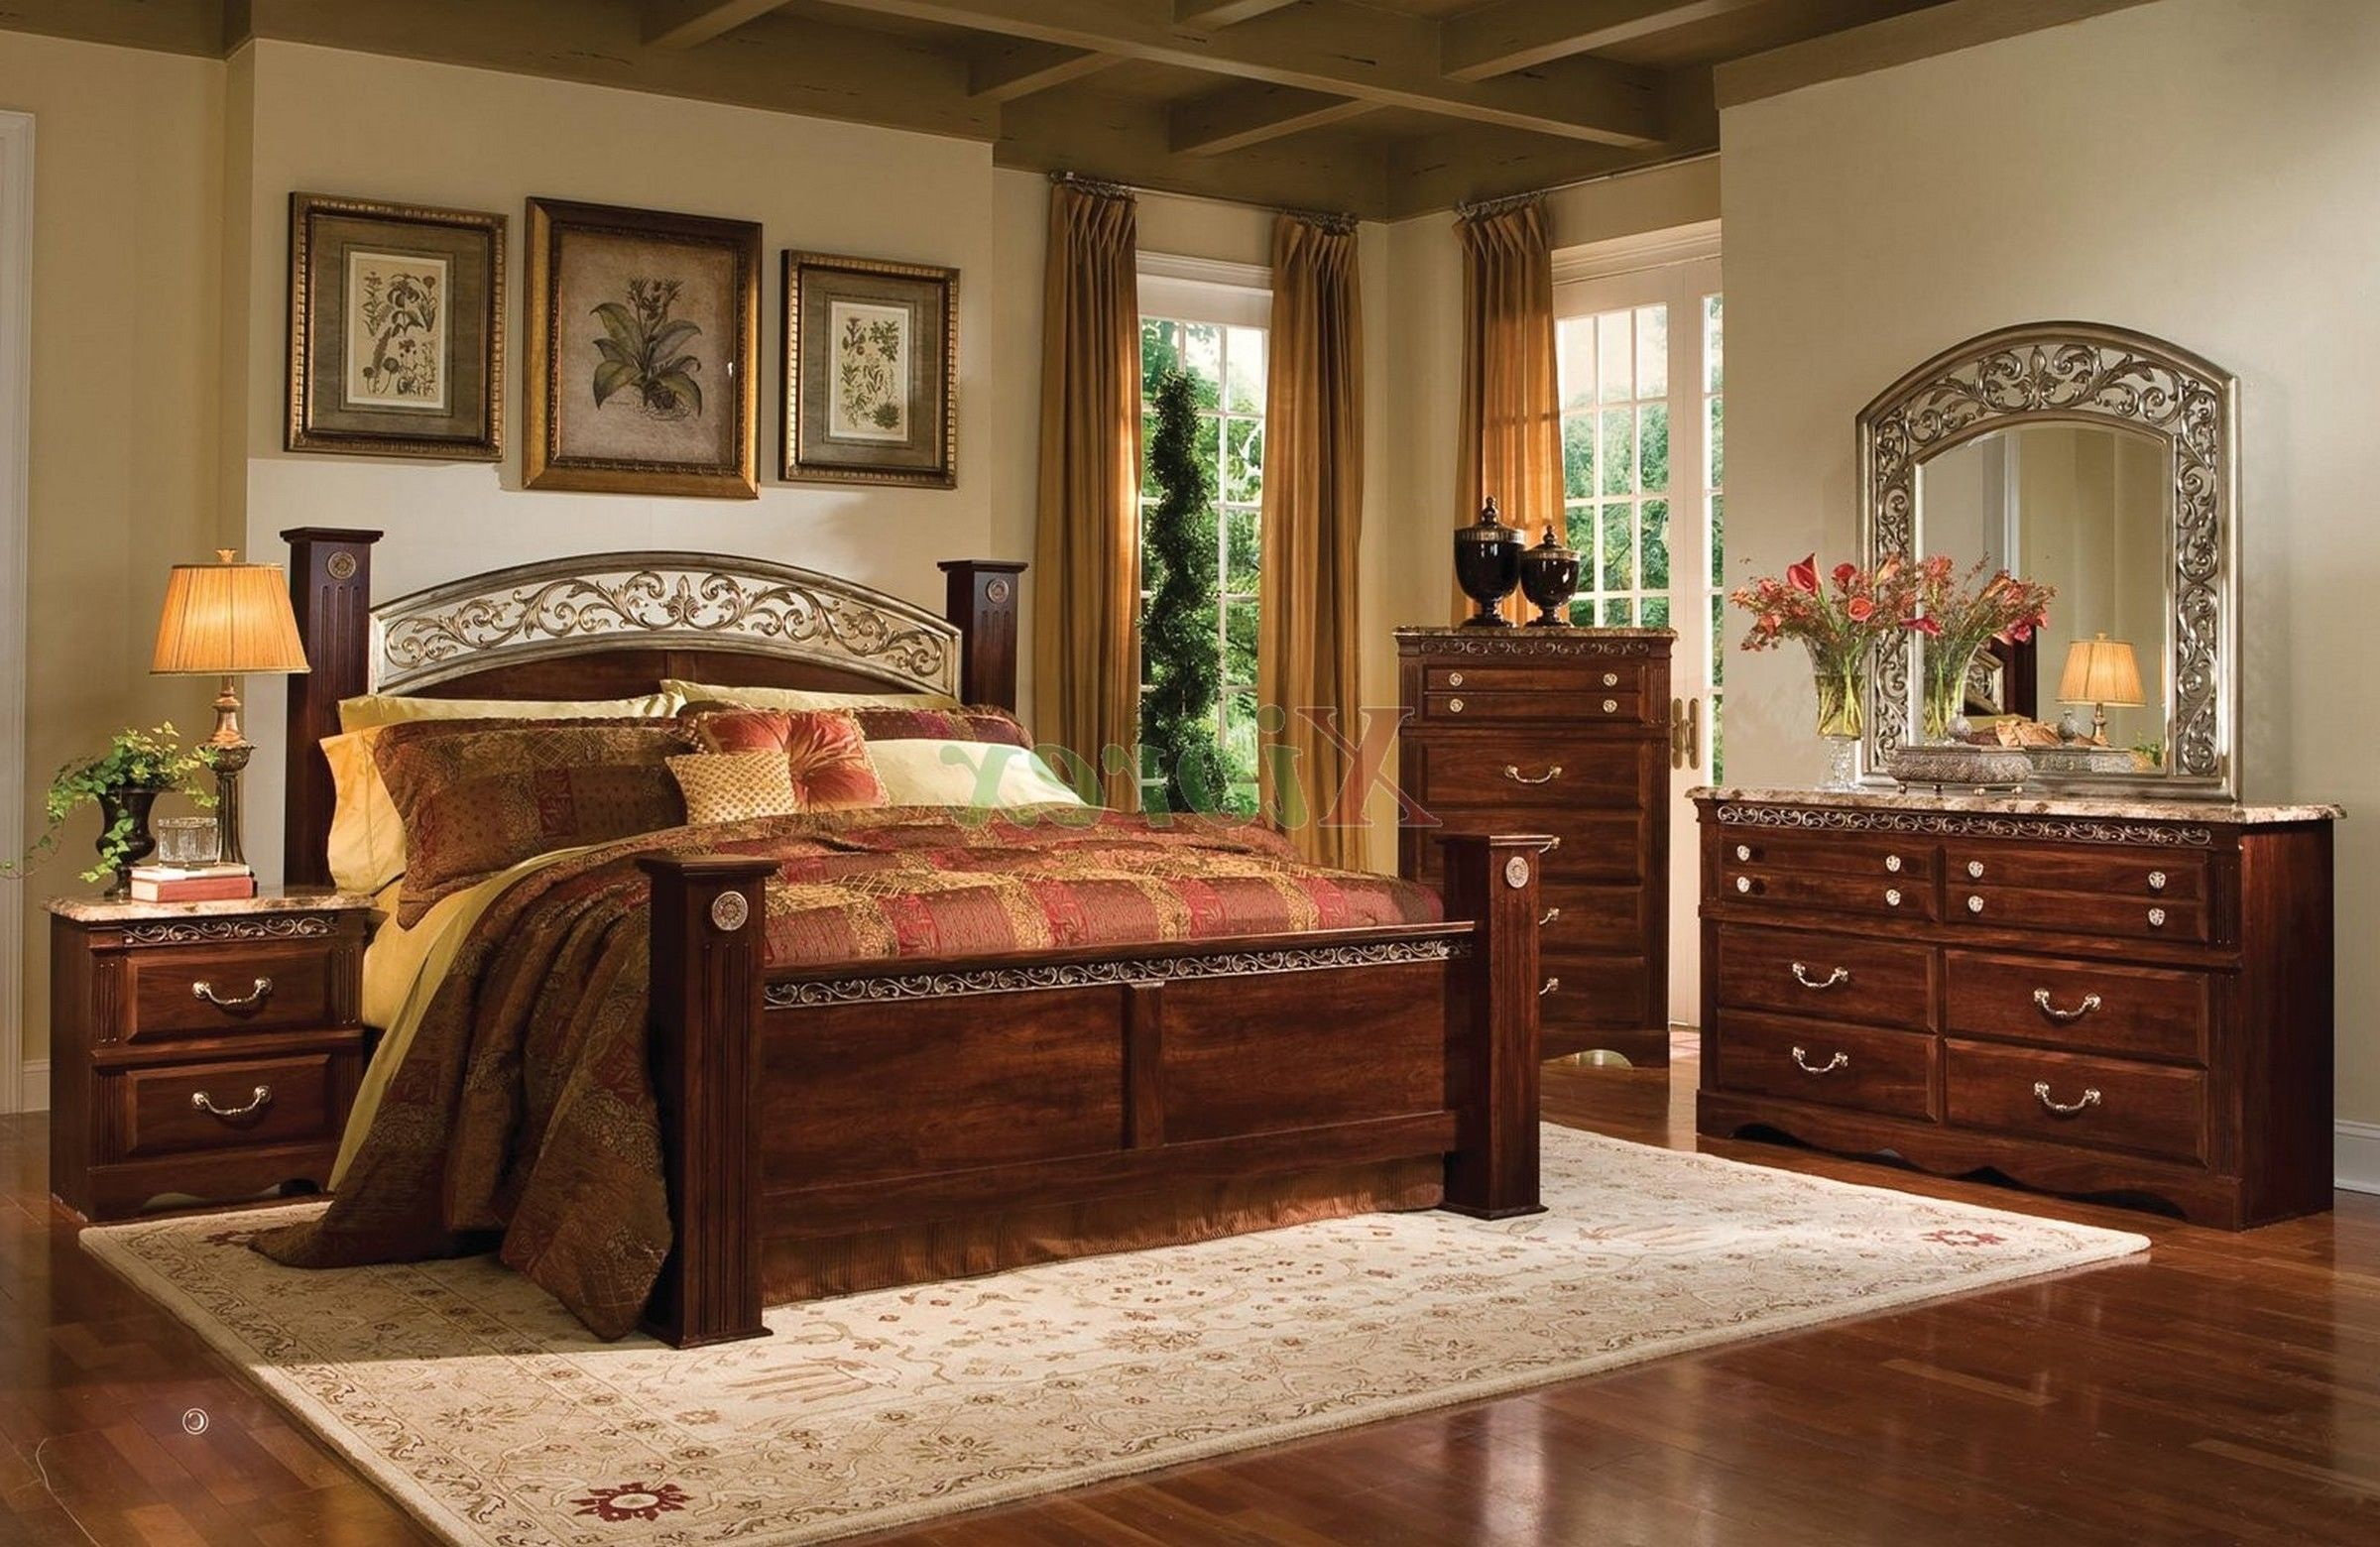 wood furniture bedroom design #picture1 | bedroom furniture